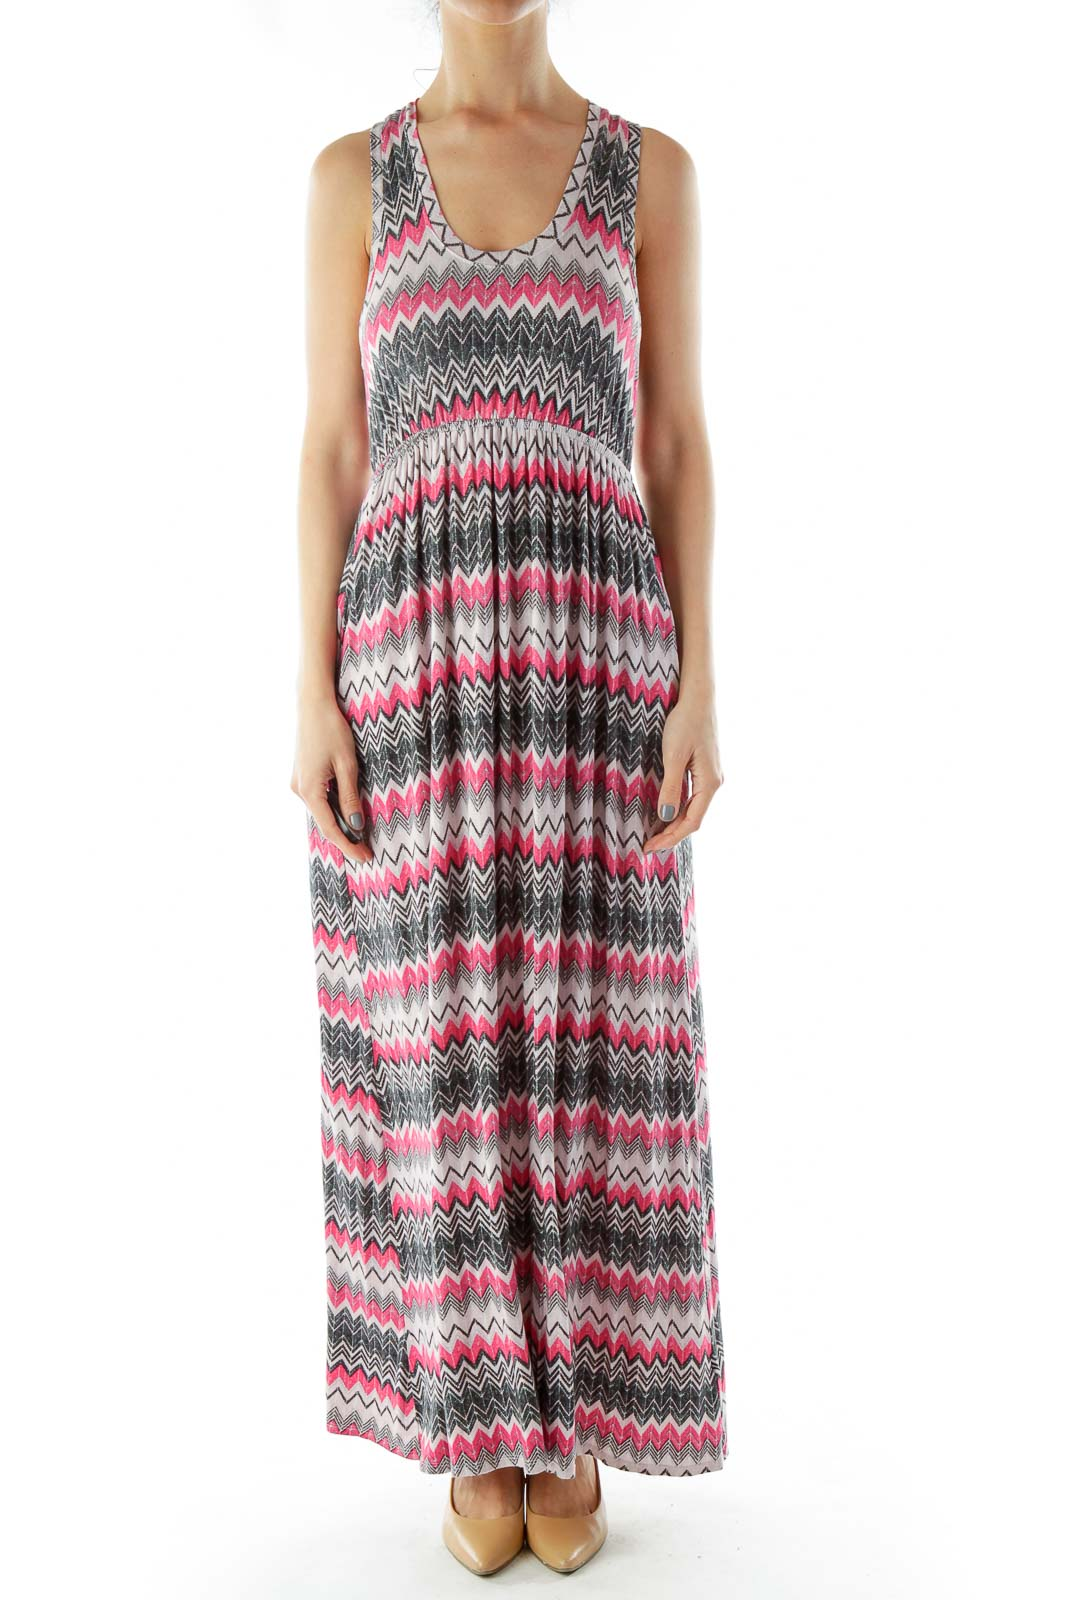 Pink Black ZigZag Maxi Dress